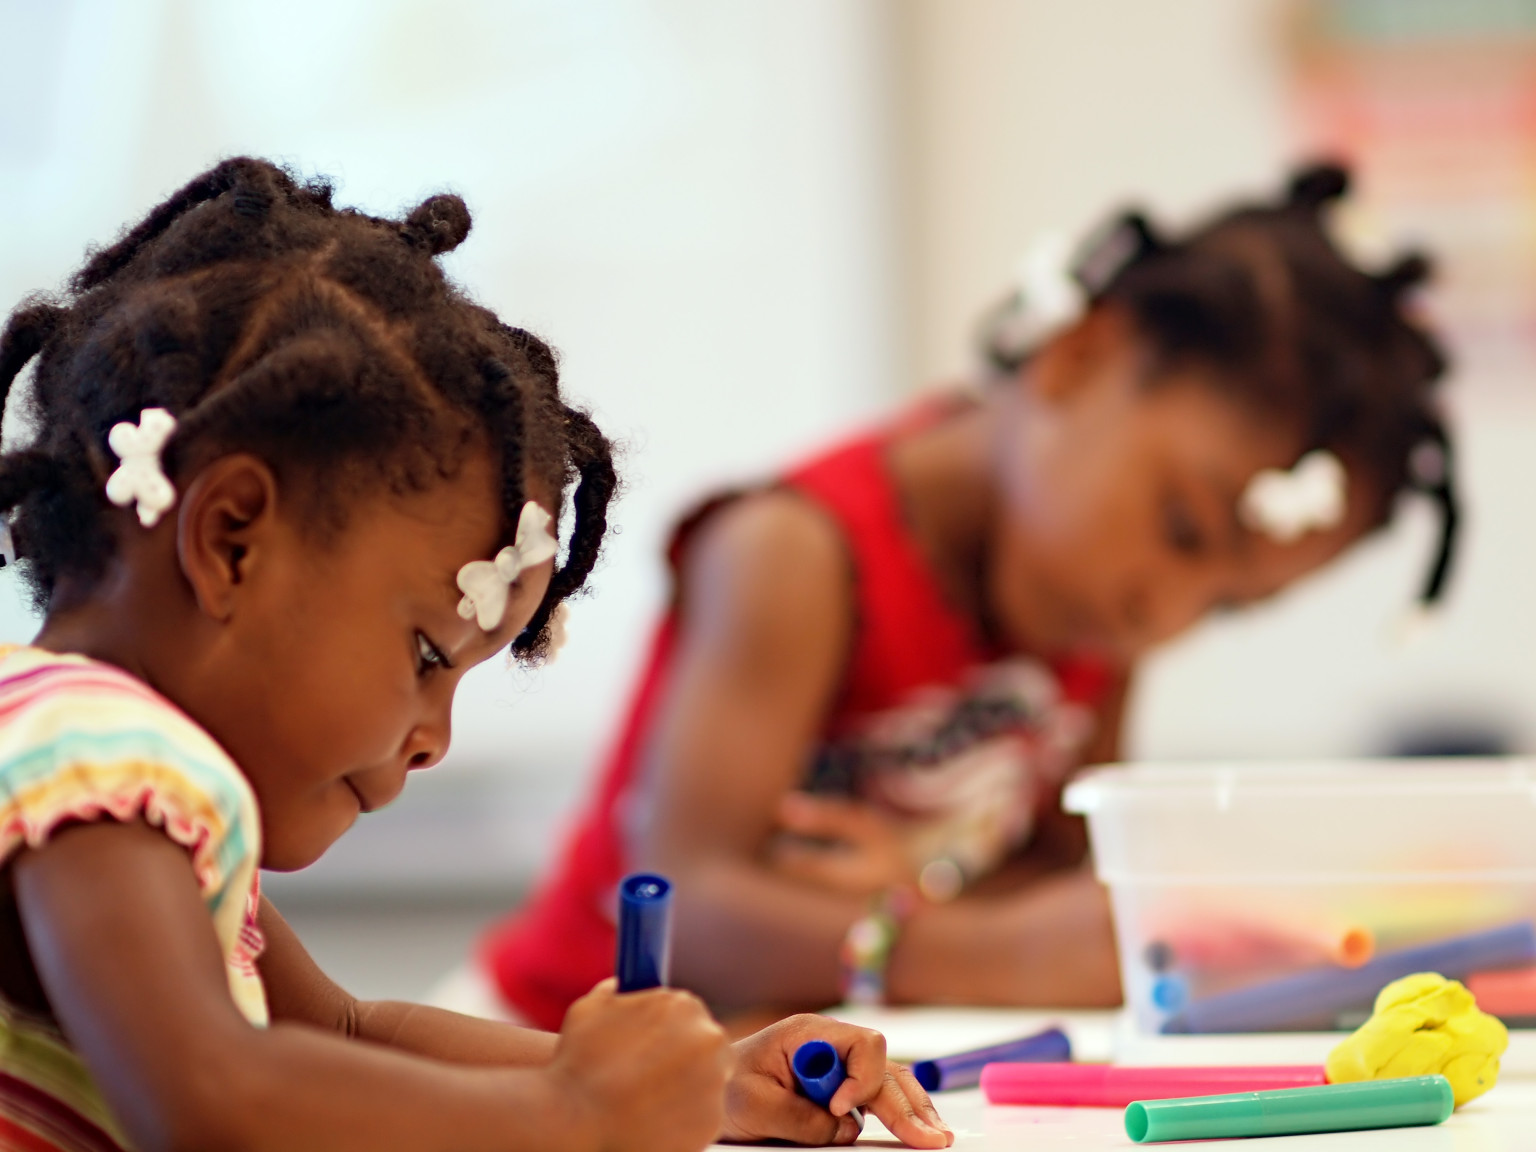 an observation of sexual behaviors from children at a daycare The classroom and outside environments should be set up to maximize safety around sexualized behaviors any observations or sexual behavior of children.